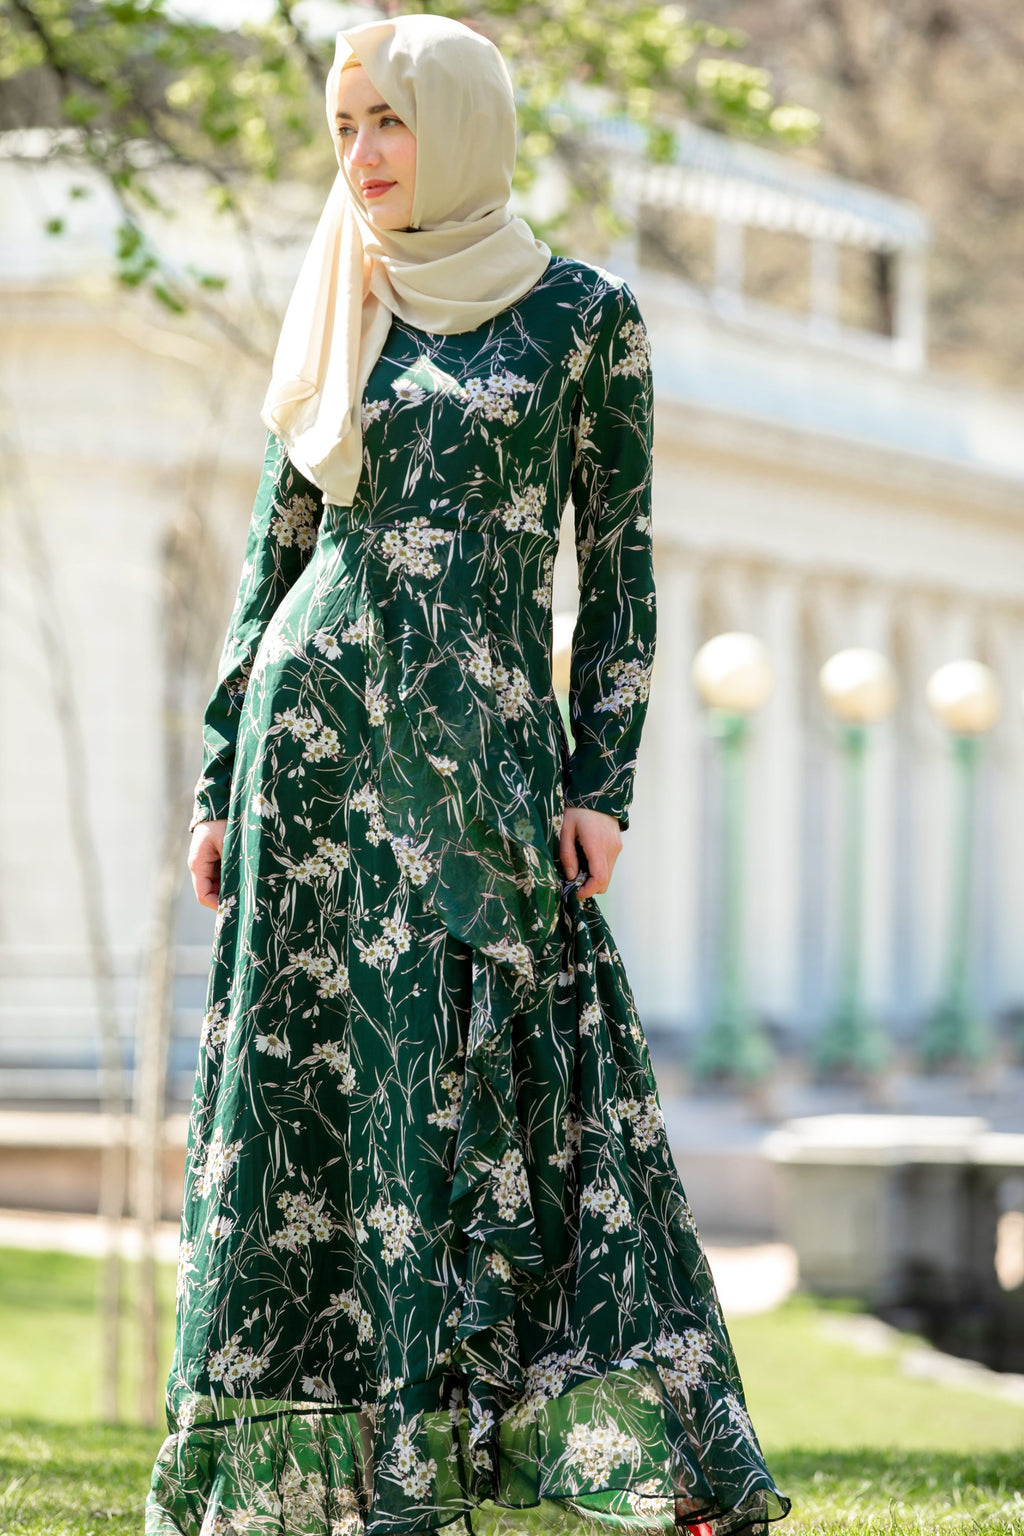 Green and White Ruffle Floral Maxi Dress With Sleeves - Abaya, Hijabs, Jilbabs, on sale now at UrbanModesty.com